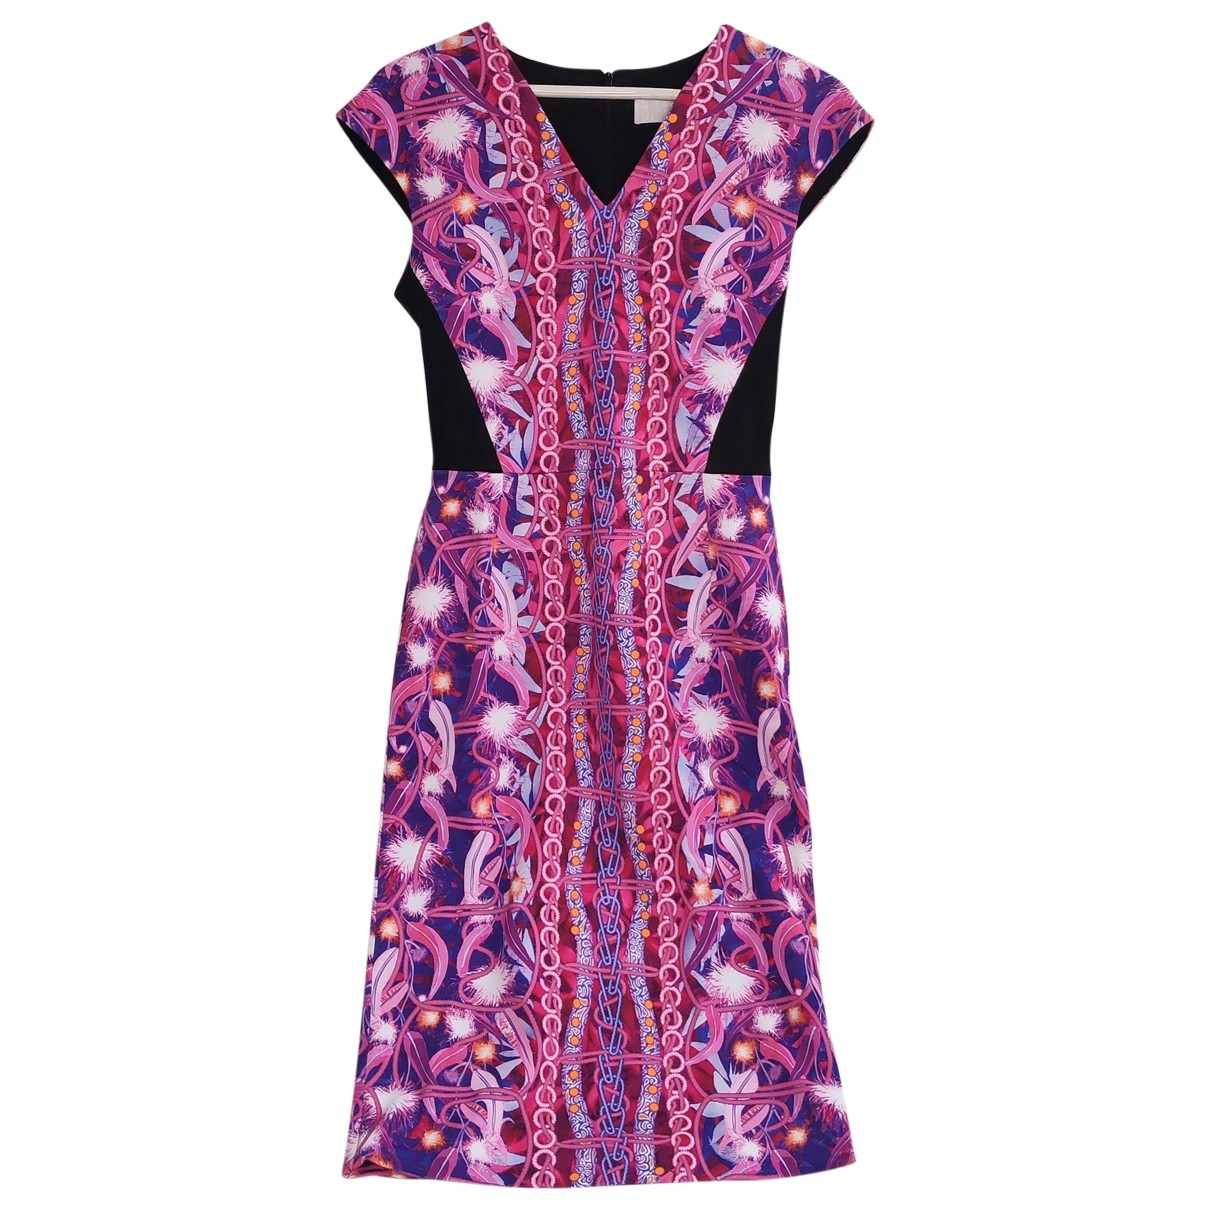 Peter Pilotto \N Pink dress for Women 12 US